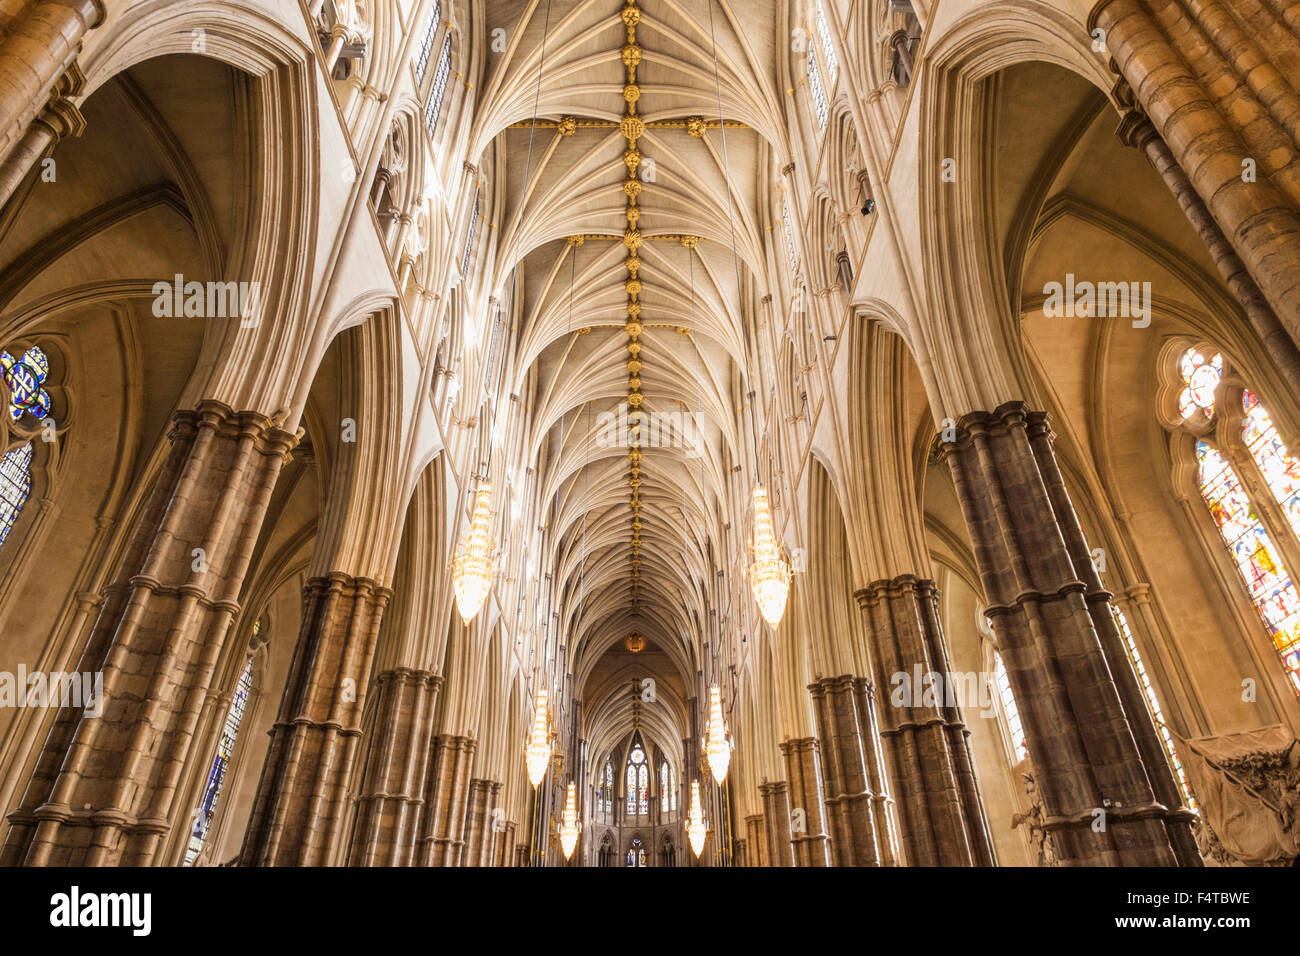 L'Angleterre, Londres, l'abbaye de Westminster, la Nef Photo Stock